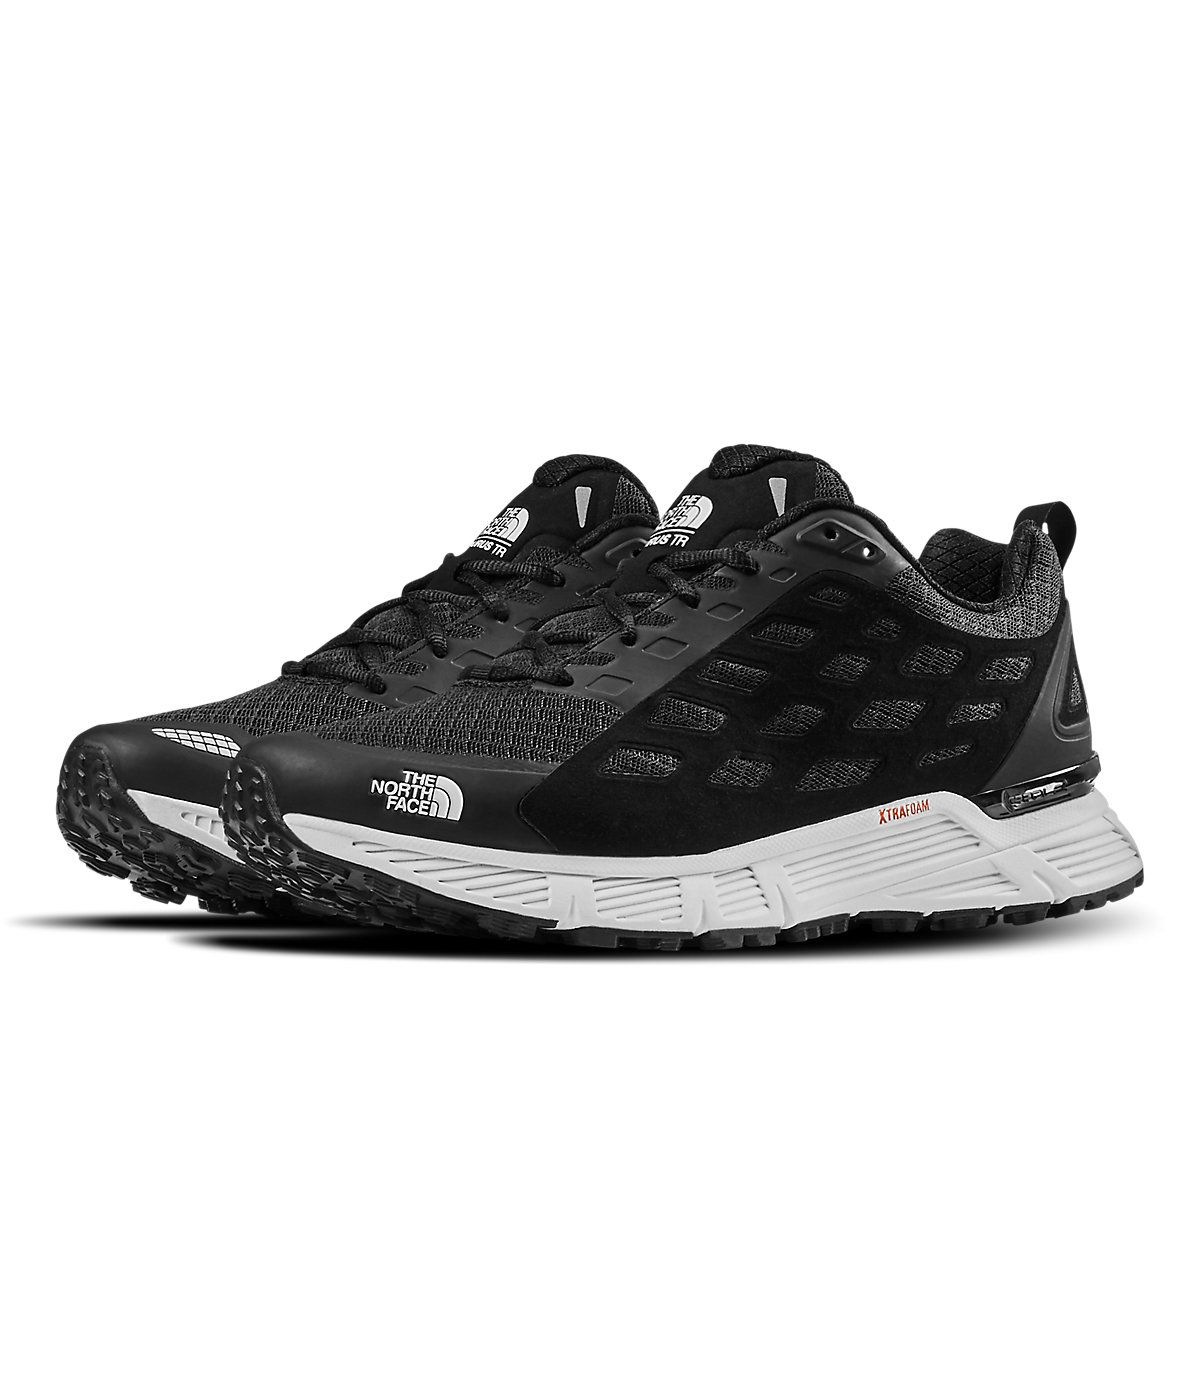 e77526a4e The North Face Men's Endurus TR Trail Running Shoes in 2019 ...